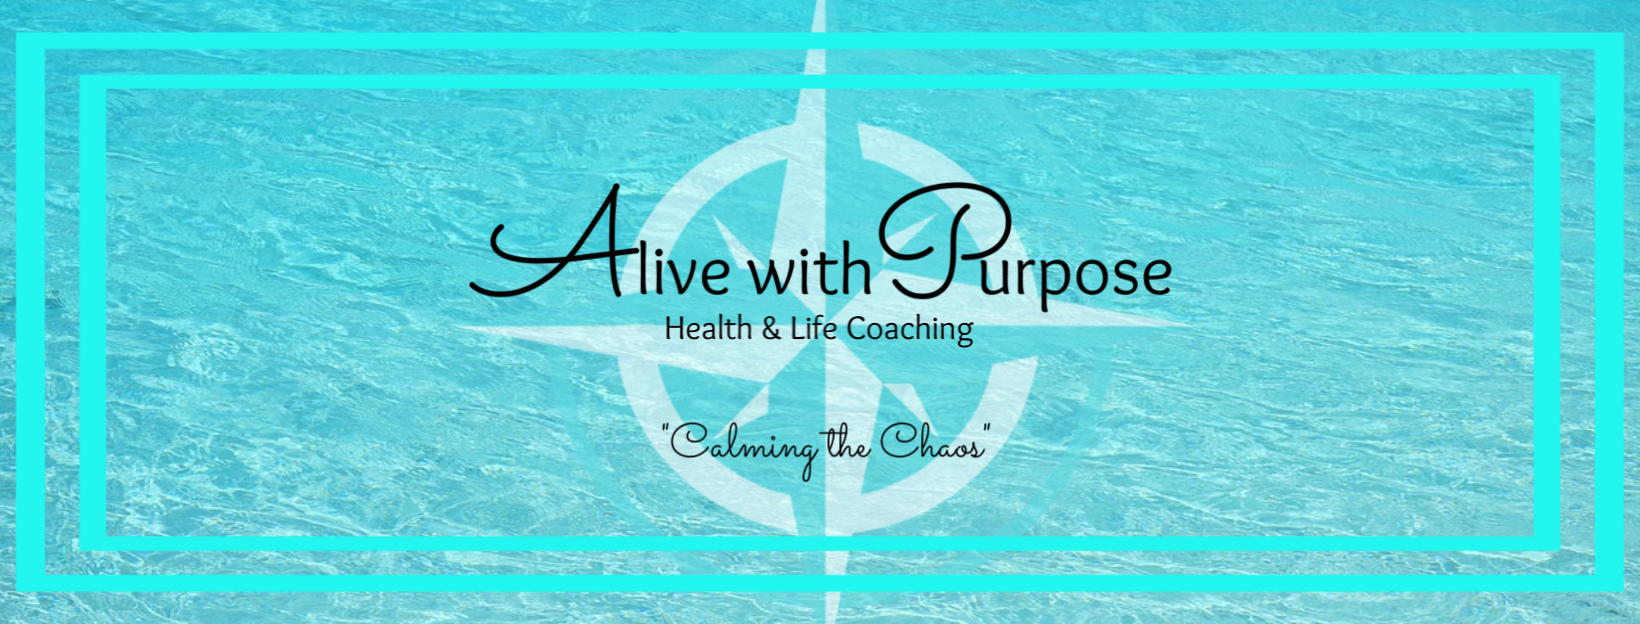 Alive With Purpose Health & Life Coaching